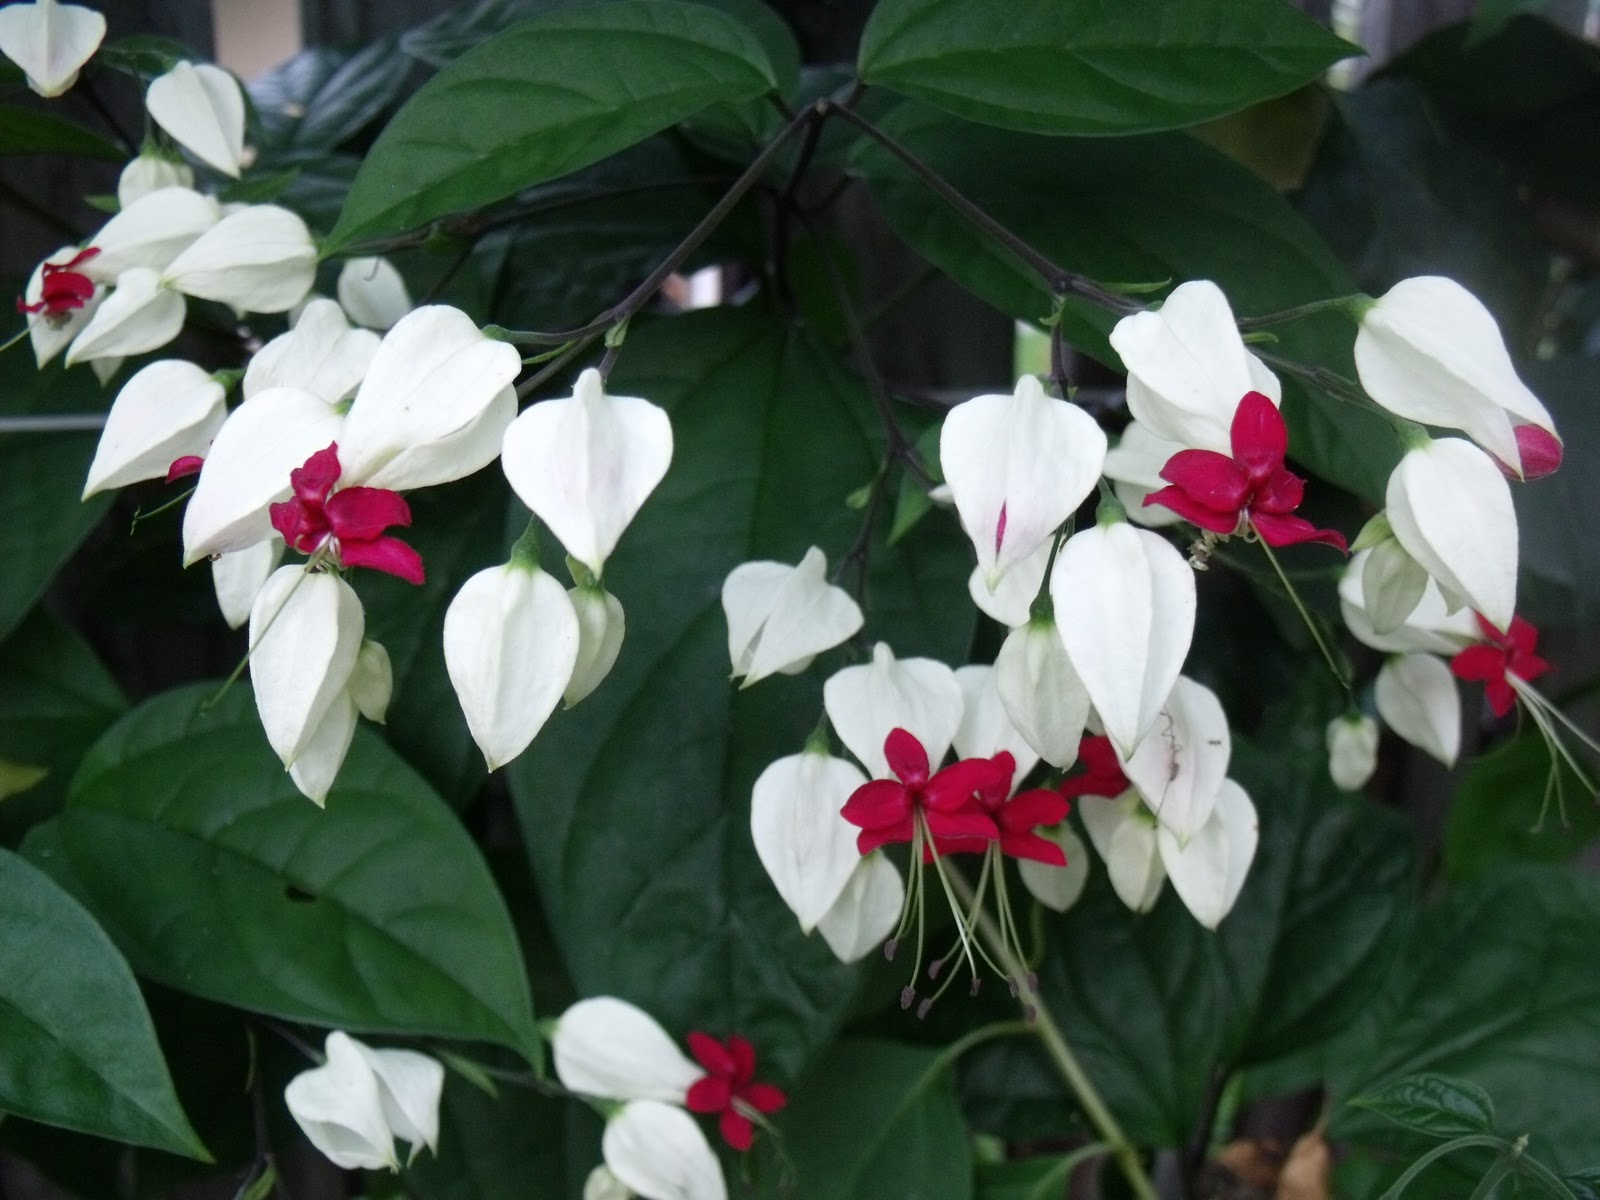 Folklore For Children The Bleeding Heart Flower